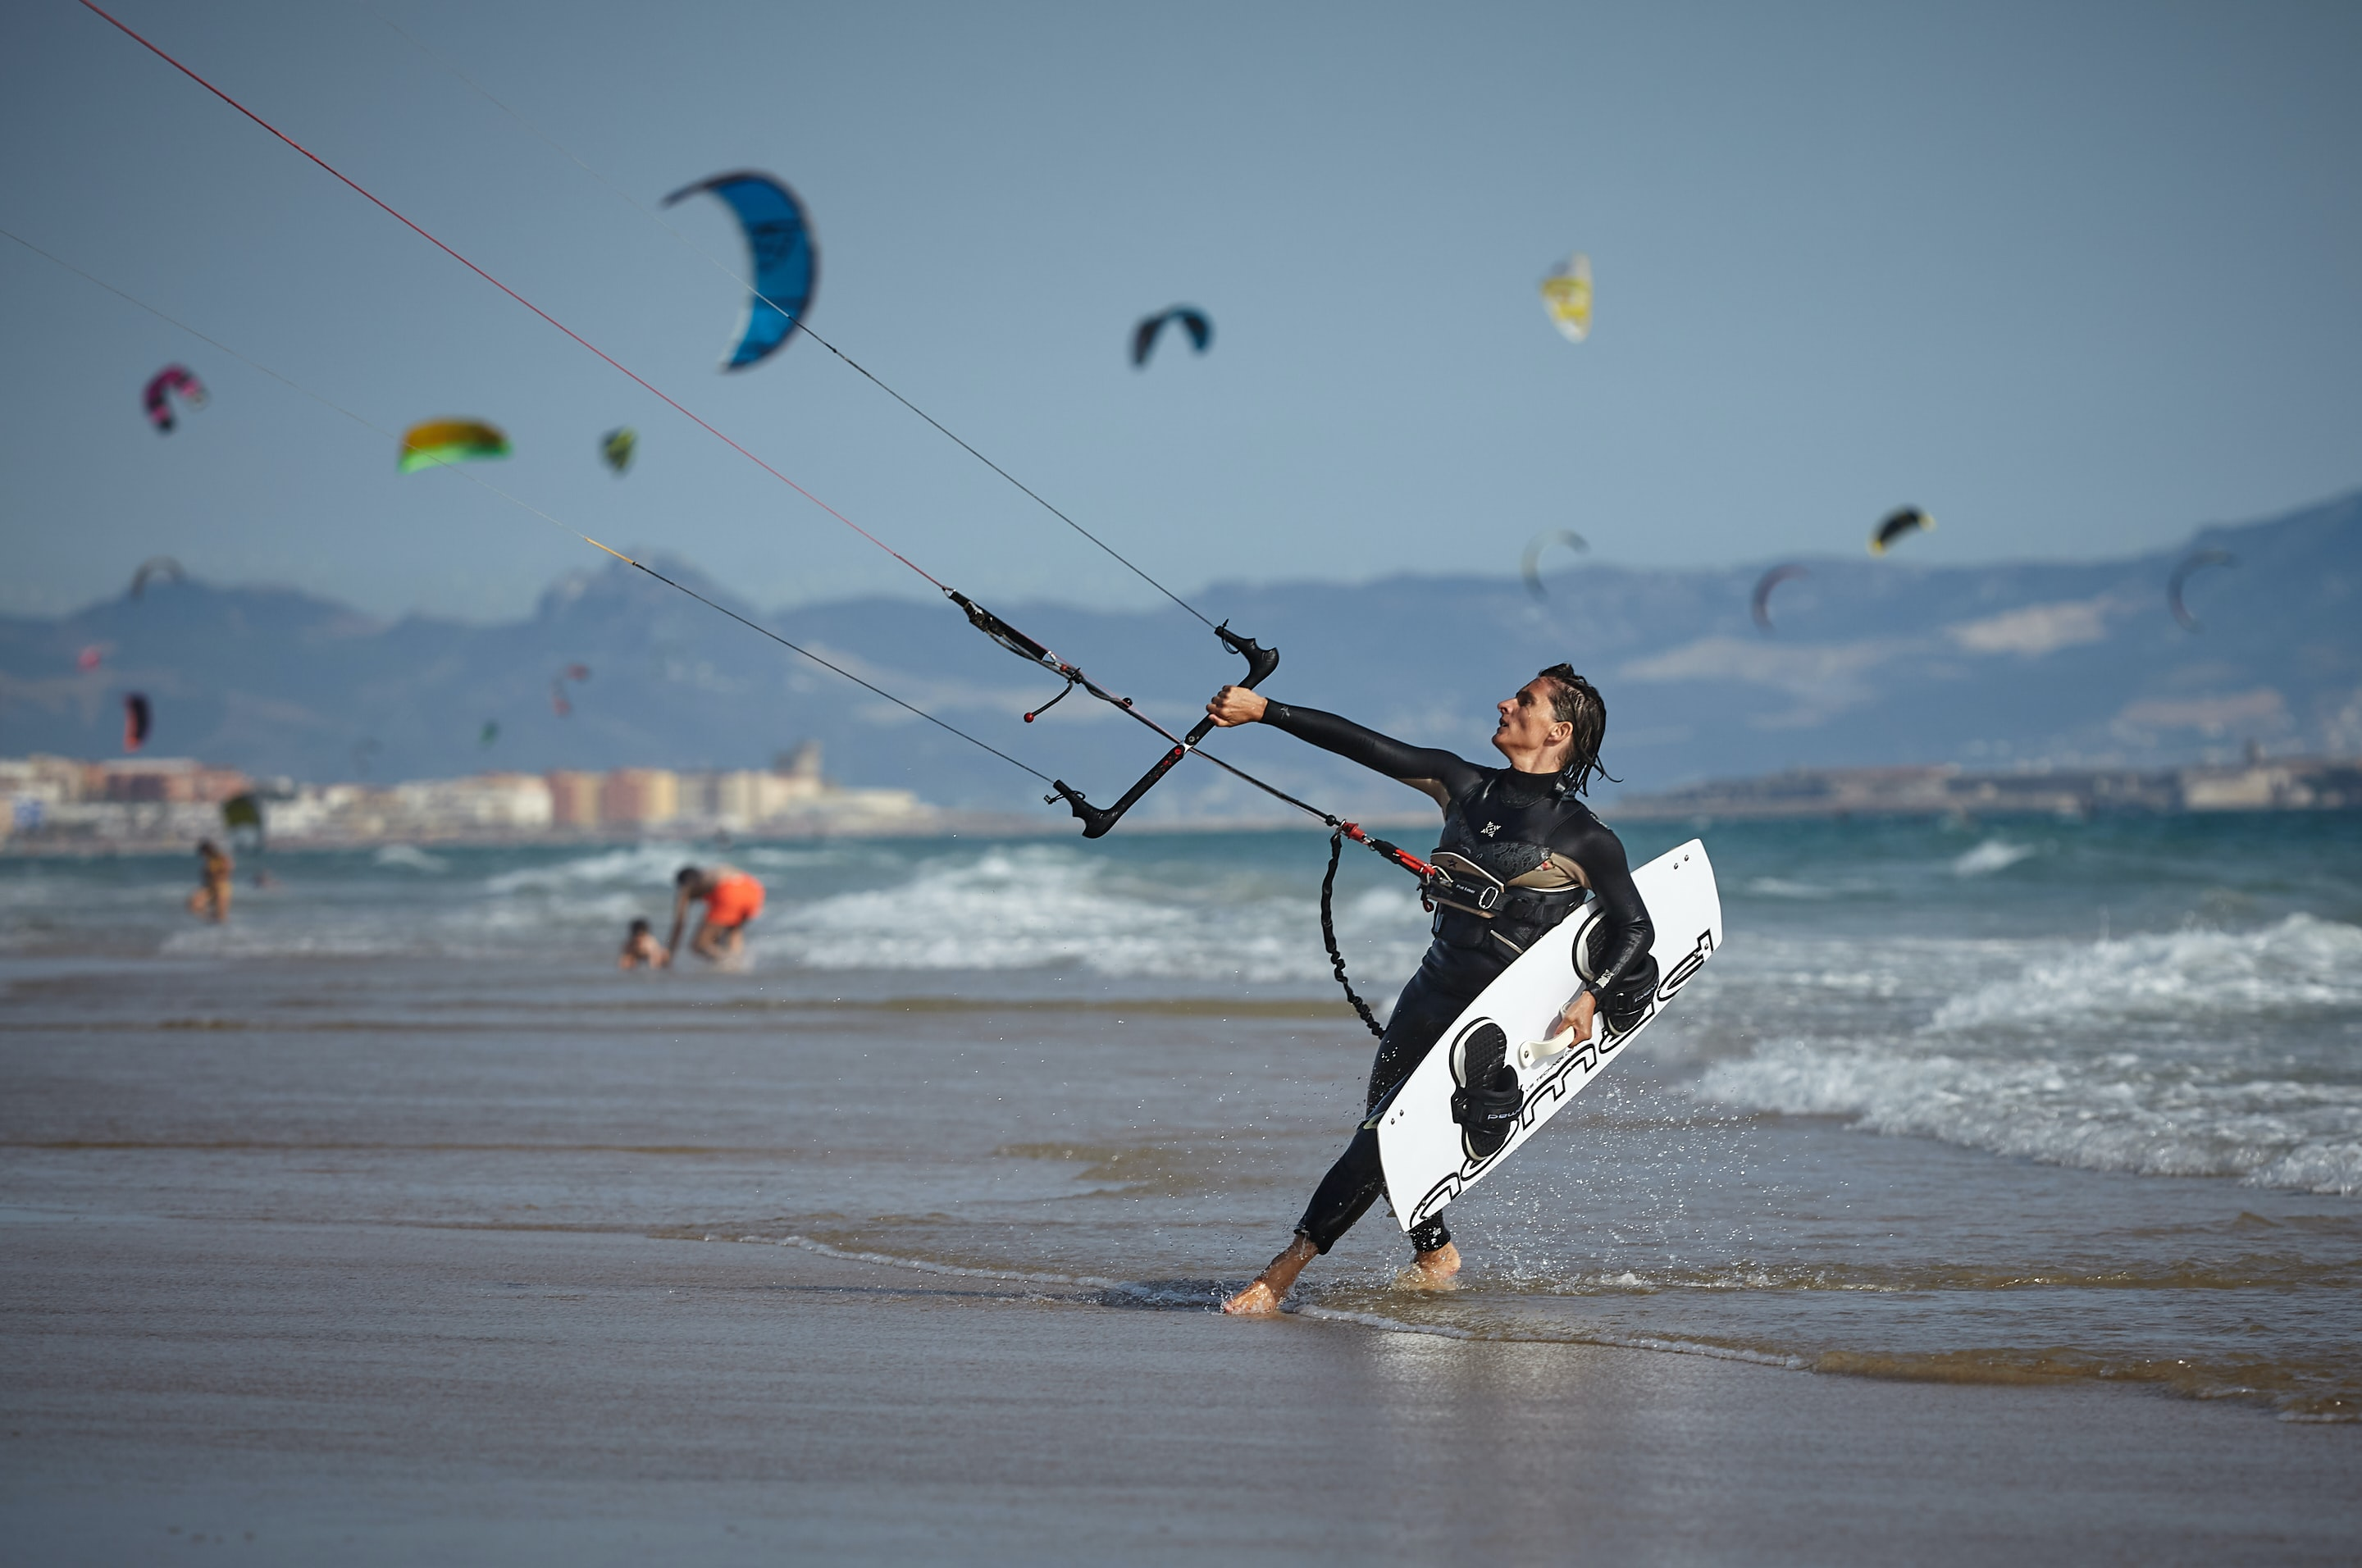 woman holding wakeboard on beach